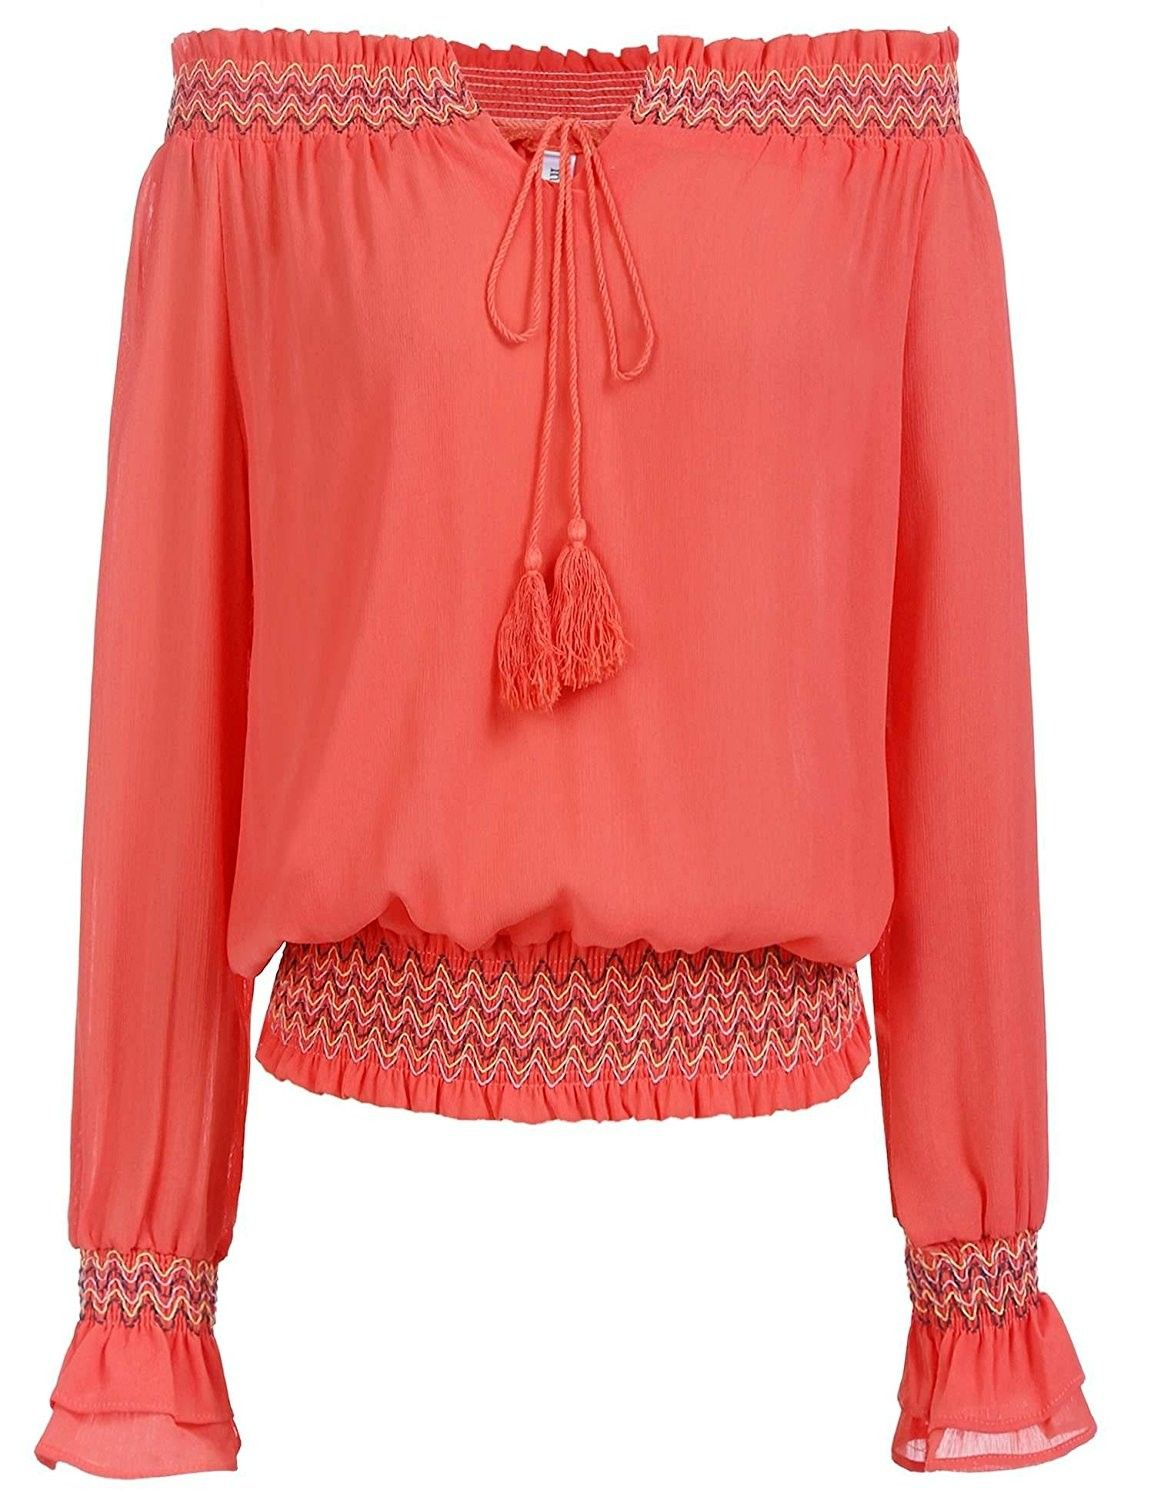 df90b7ed Women's Clothing, Tops & Tees, Blouses & Button-Down Shirts, Women Chiffon  Off Shoulder Tassel Vintage Peasant Blouses Tops Long Sleeve Shirt - Orange  Red ...